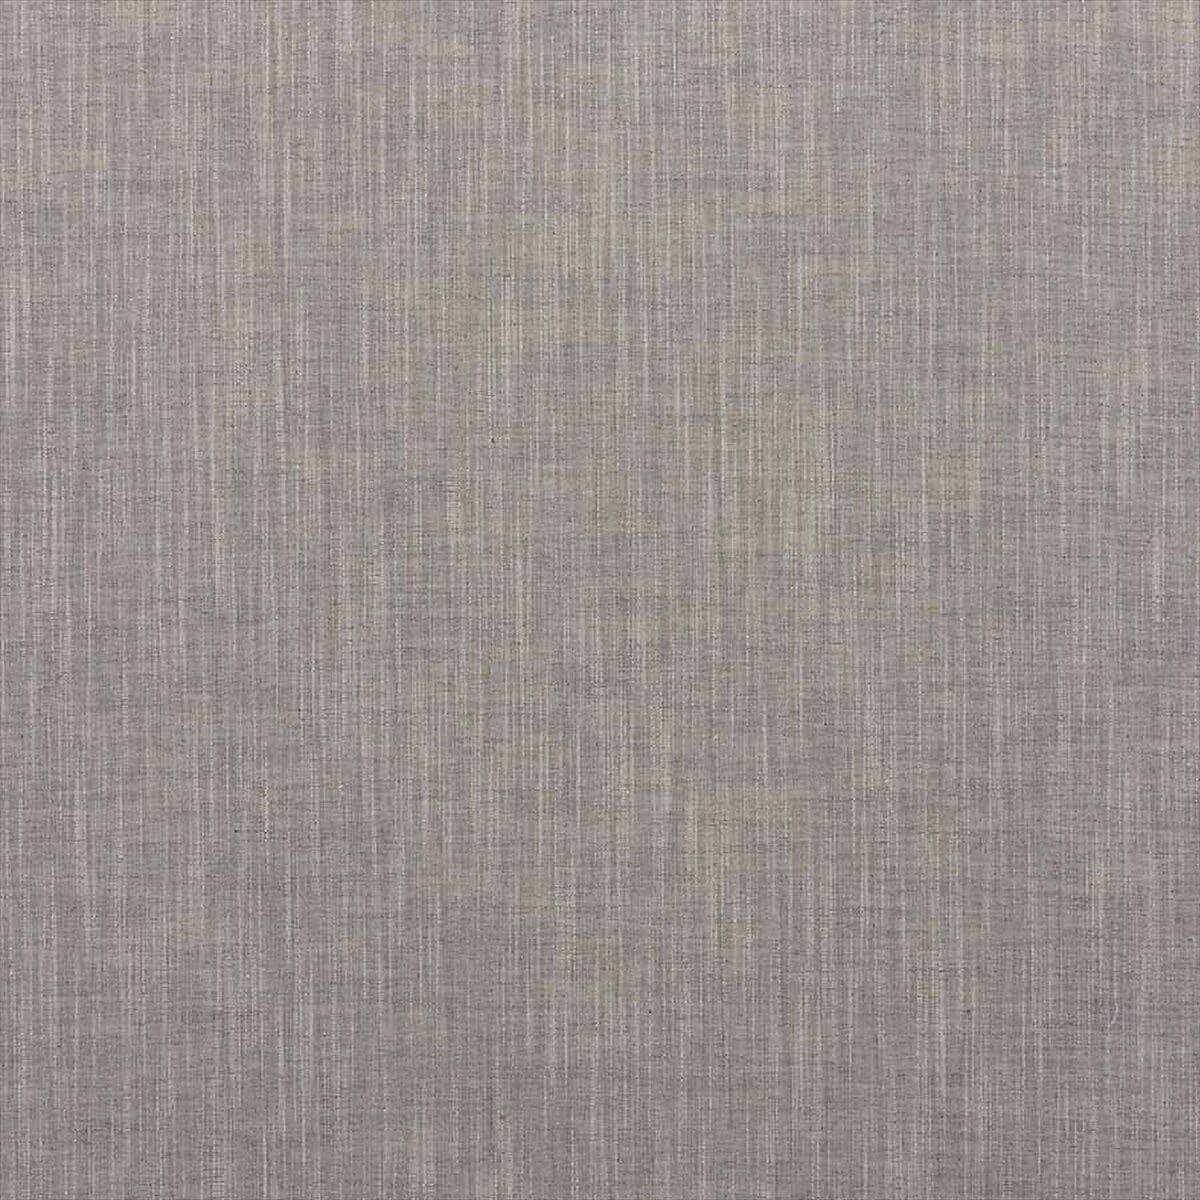 1591 Collection - Sunwashed Linen